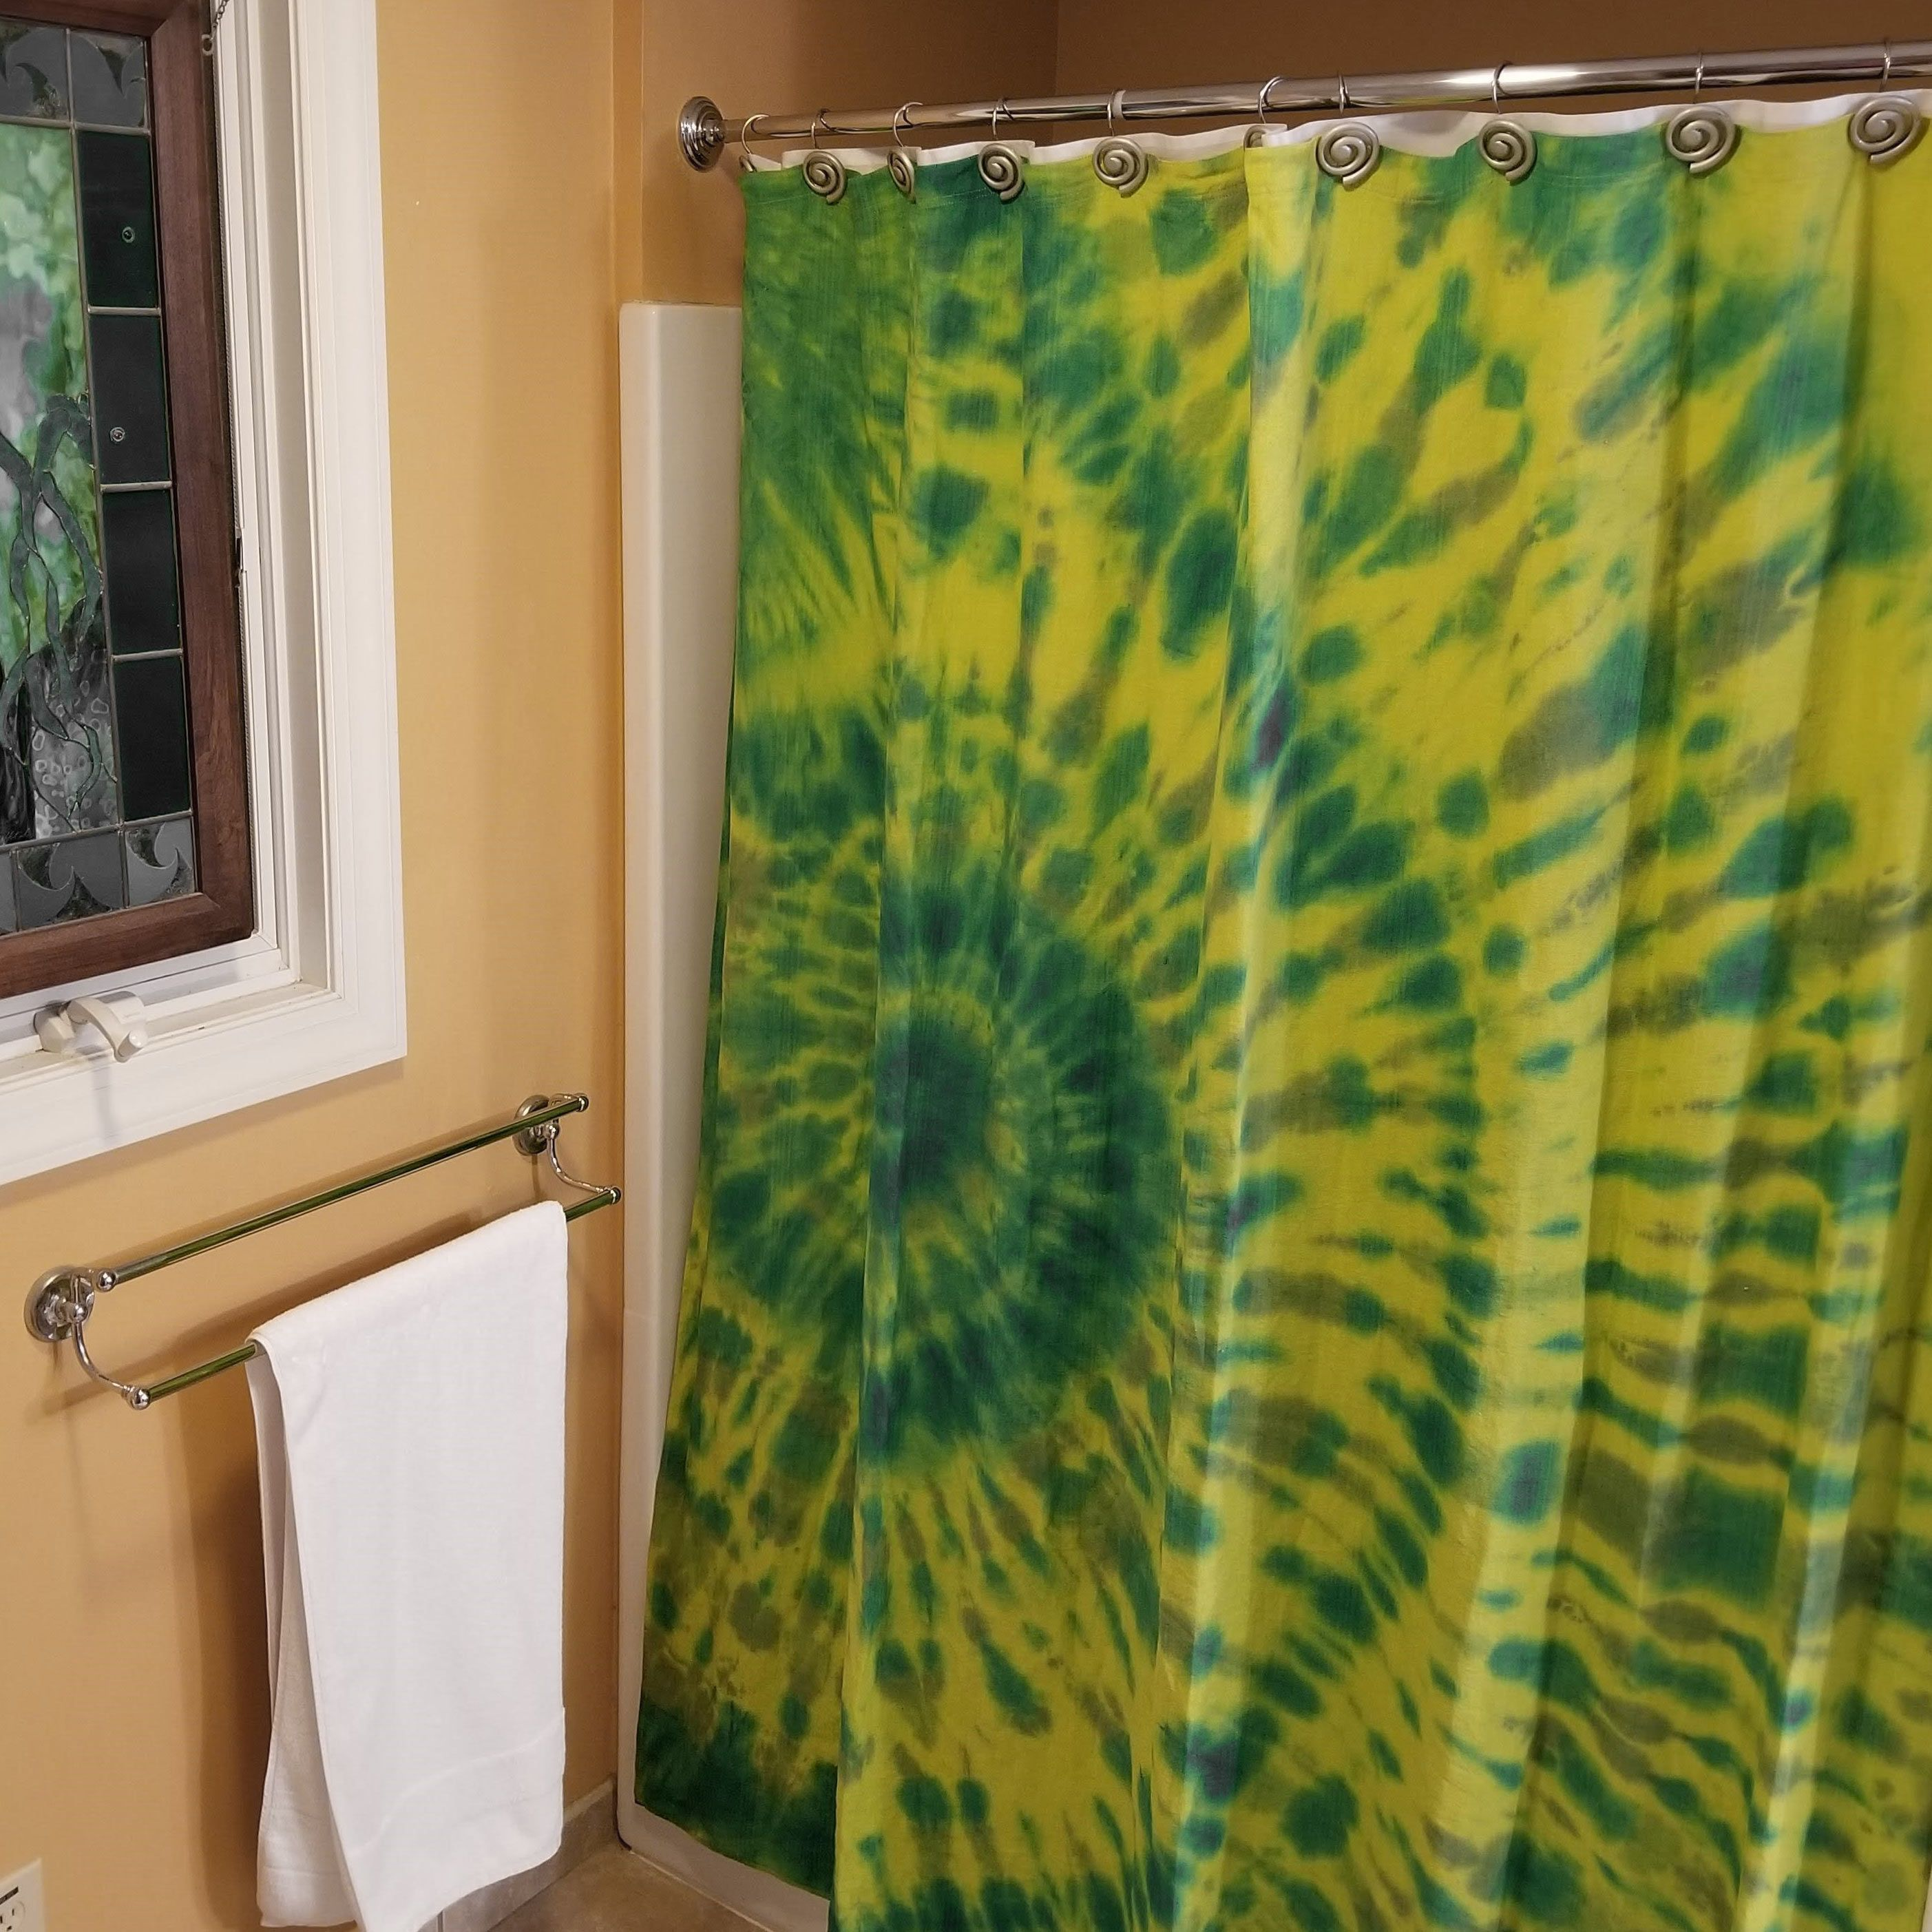 Wow A Rawganique Hemp Shower Curtain Gets A New Groovy Look